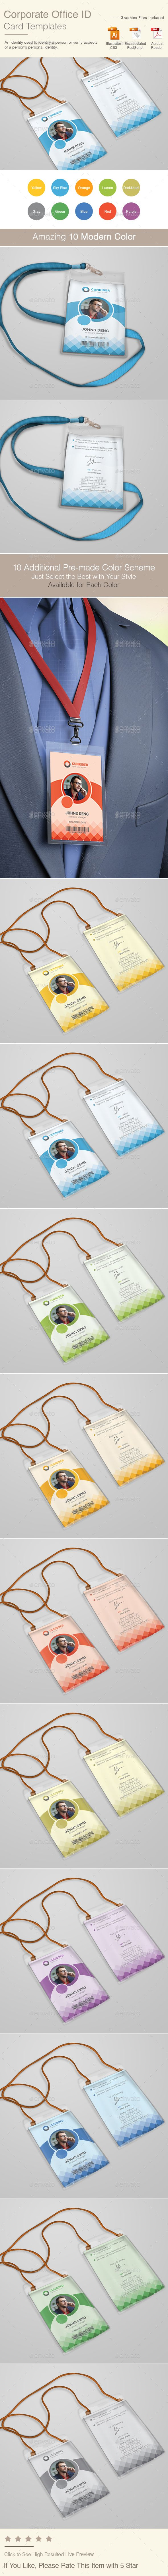 #Corporate #IDCard - Miscellaneous Print Templates.Download here: http://graphicriver.net/item/corporate-id-card/15716108?ref=arroganttype